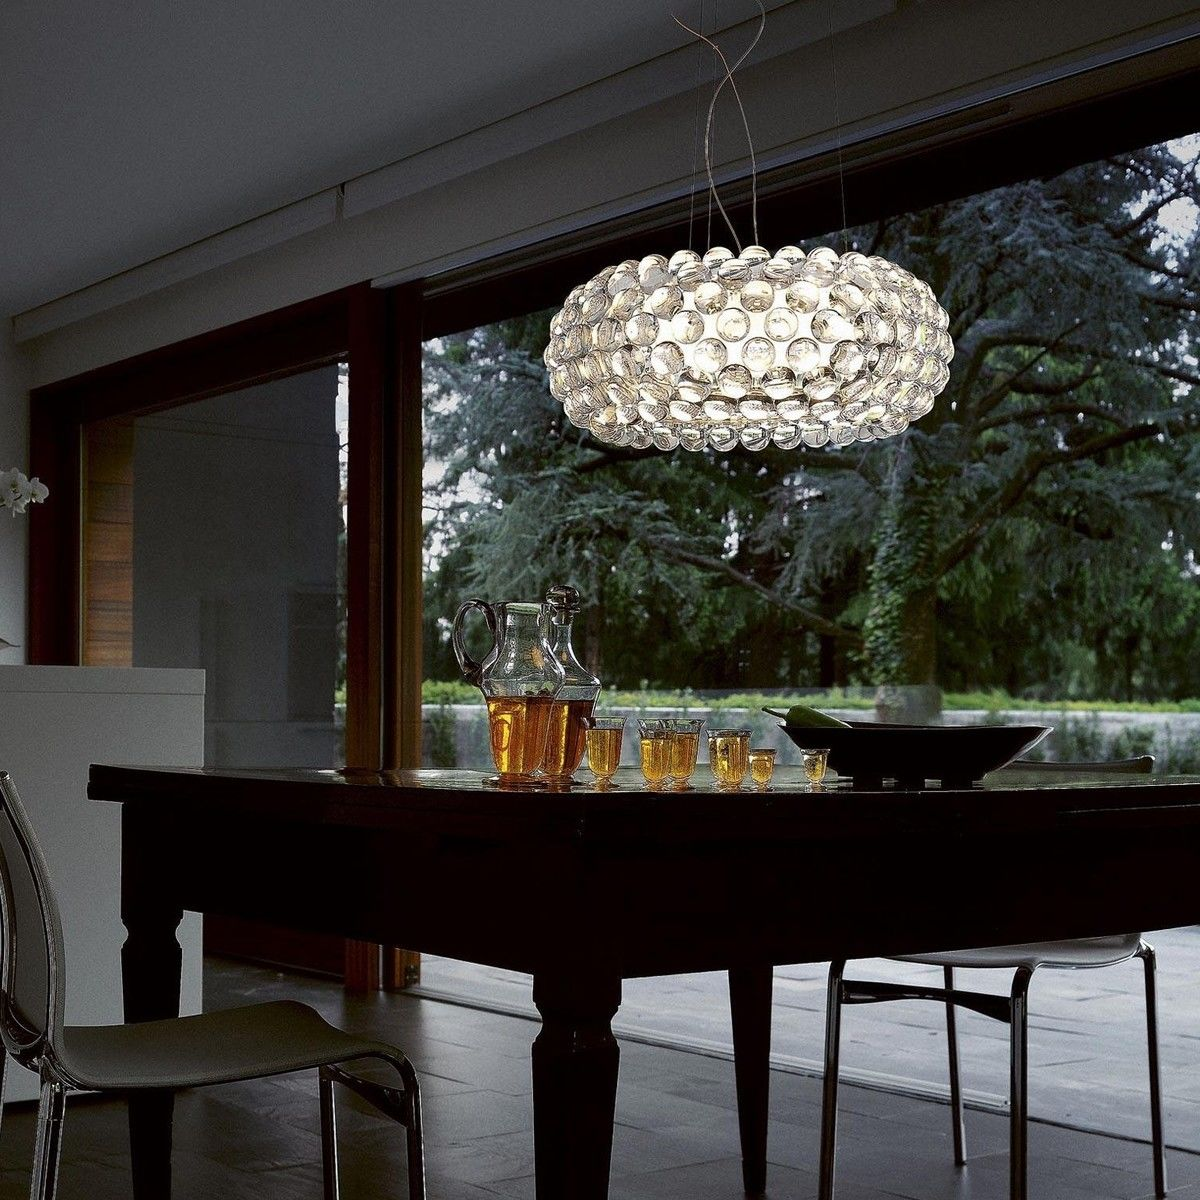 caboche media sospensione led suspension lamp foscarini. Black Bedroom Furniture Sets. Home Design Ideas